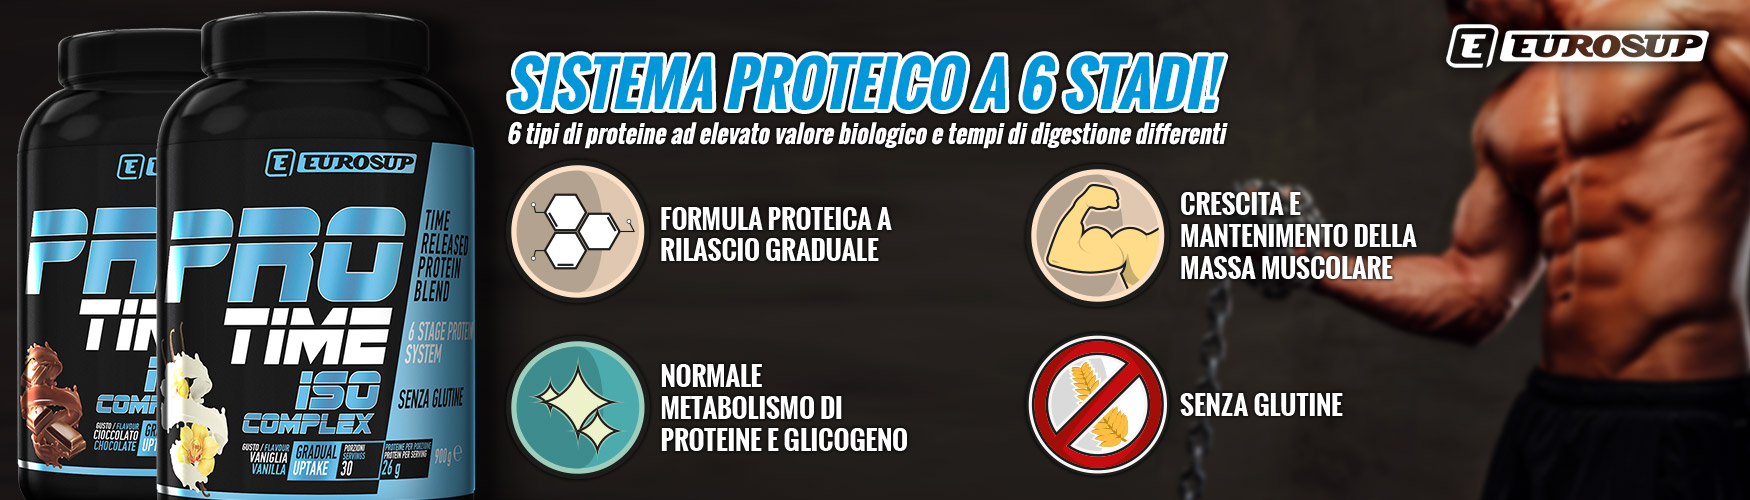 Eurosup---WEB---PRO-TIME-ISO-COMPLEX---BANNER-ITA